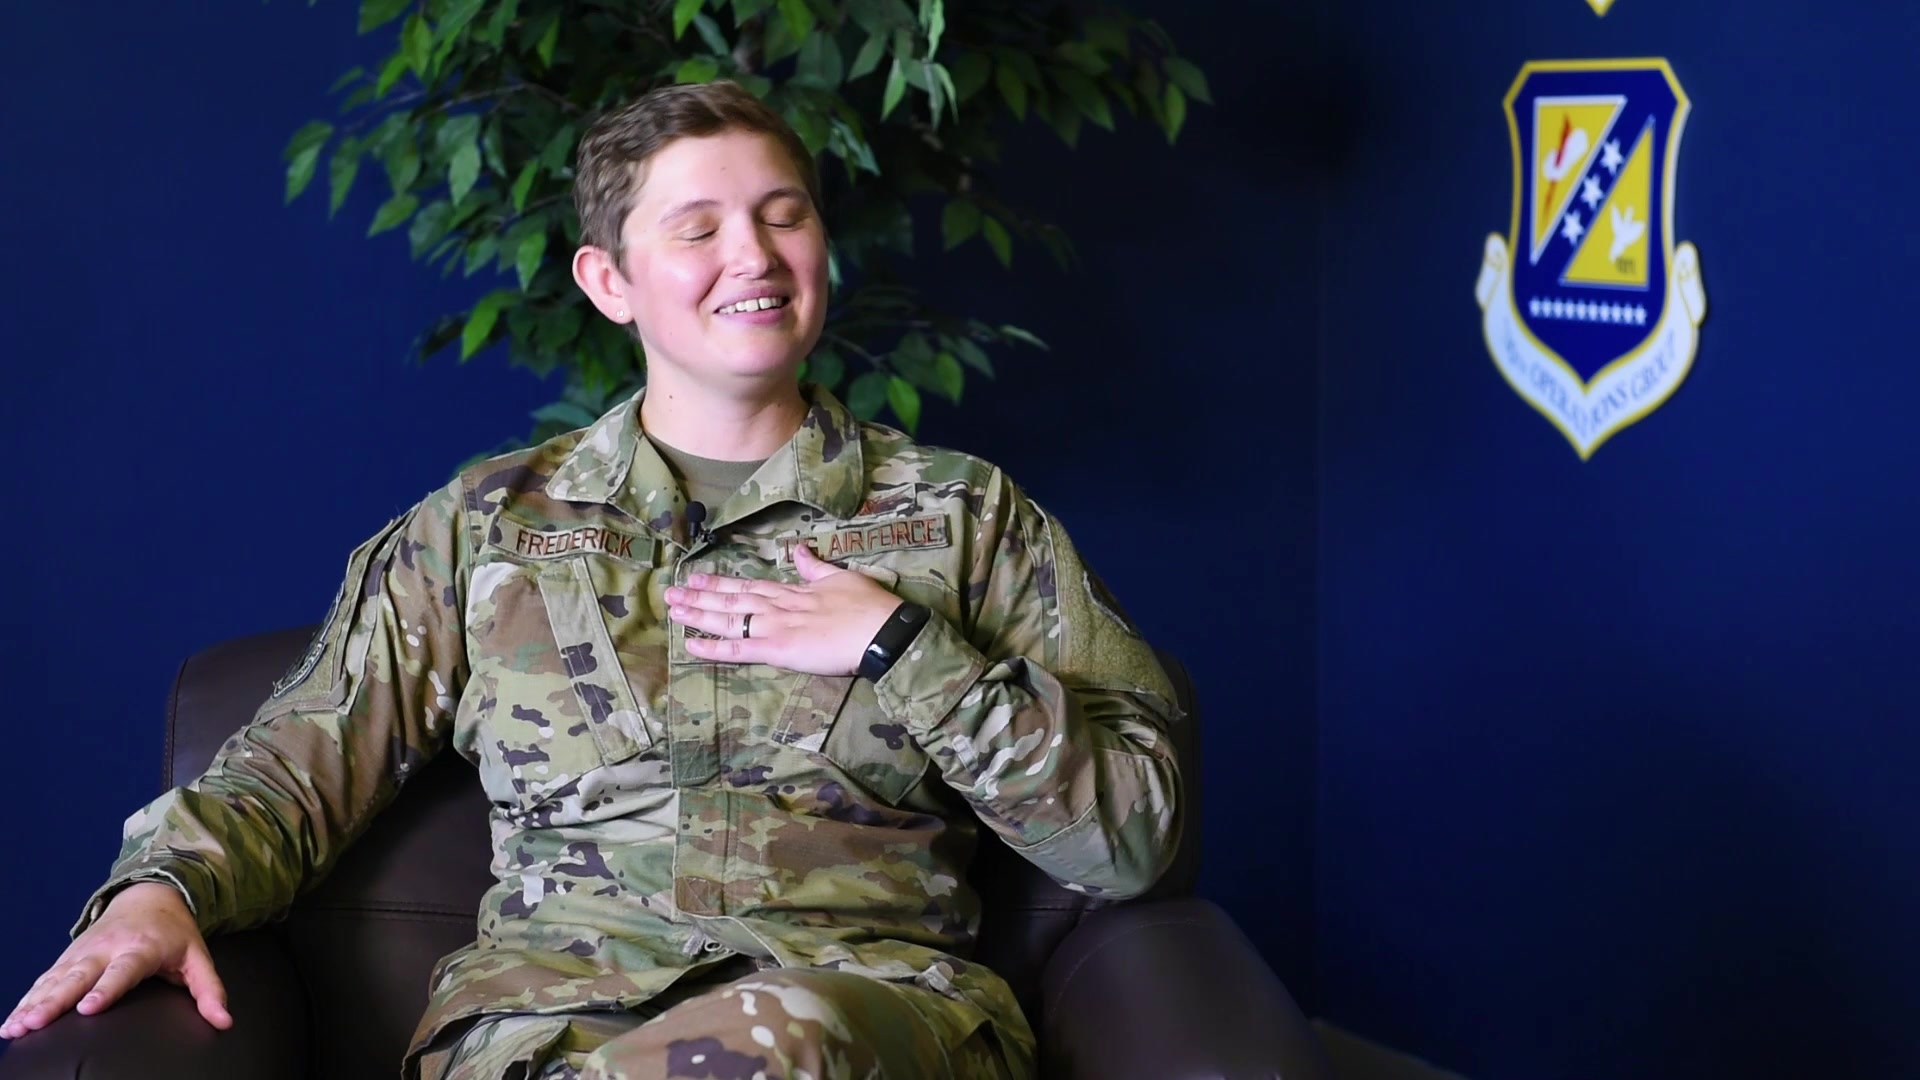 SCHRIEVER AIR FORCE BASE, Colo. -- Staff Sgt. Caryn Frederick, 19th Space Operations Squadron technician, shares her thoughts on leadership, mentorship and success during an interview July 19th, 2019.